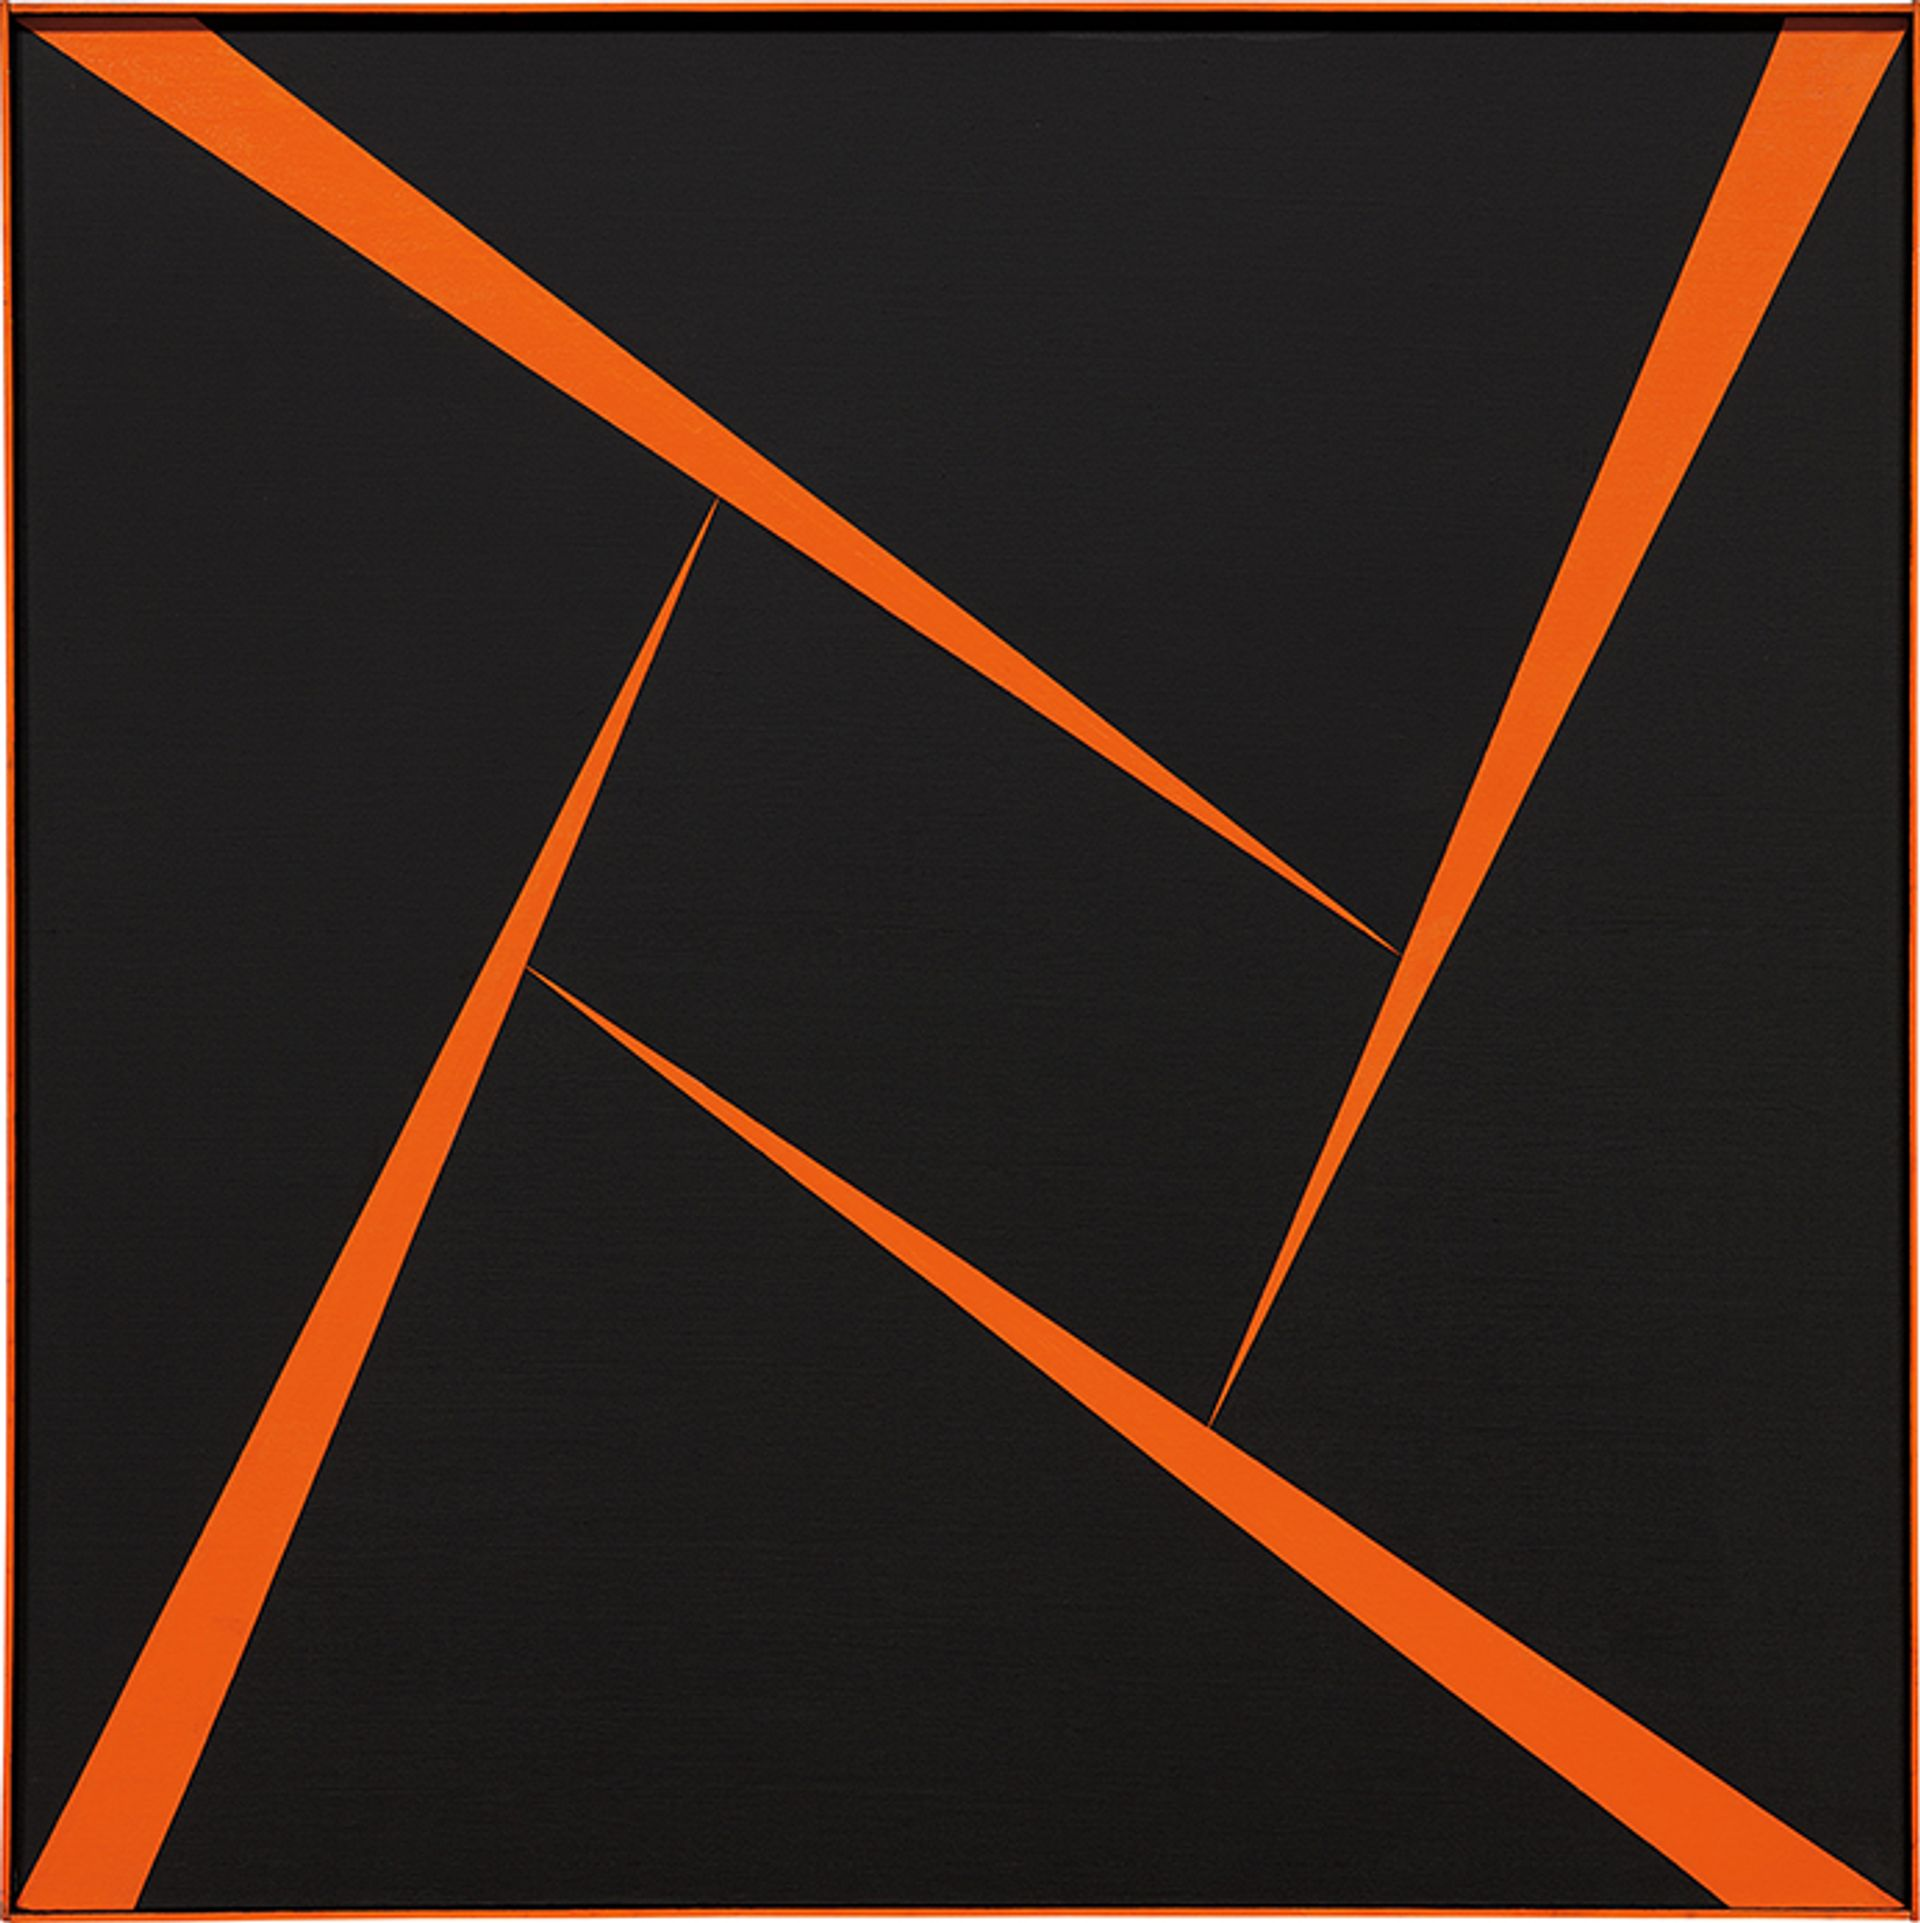 Carmen Herrera's Untitled (Orange and Black) (1956) sold for an artist-record $1.2m in Phillips' 20th Century and Contemporary Art evening sale in New York in November 2017 Courtesy of Phillips